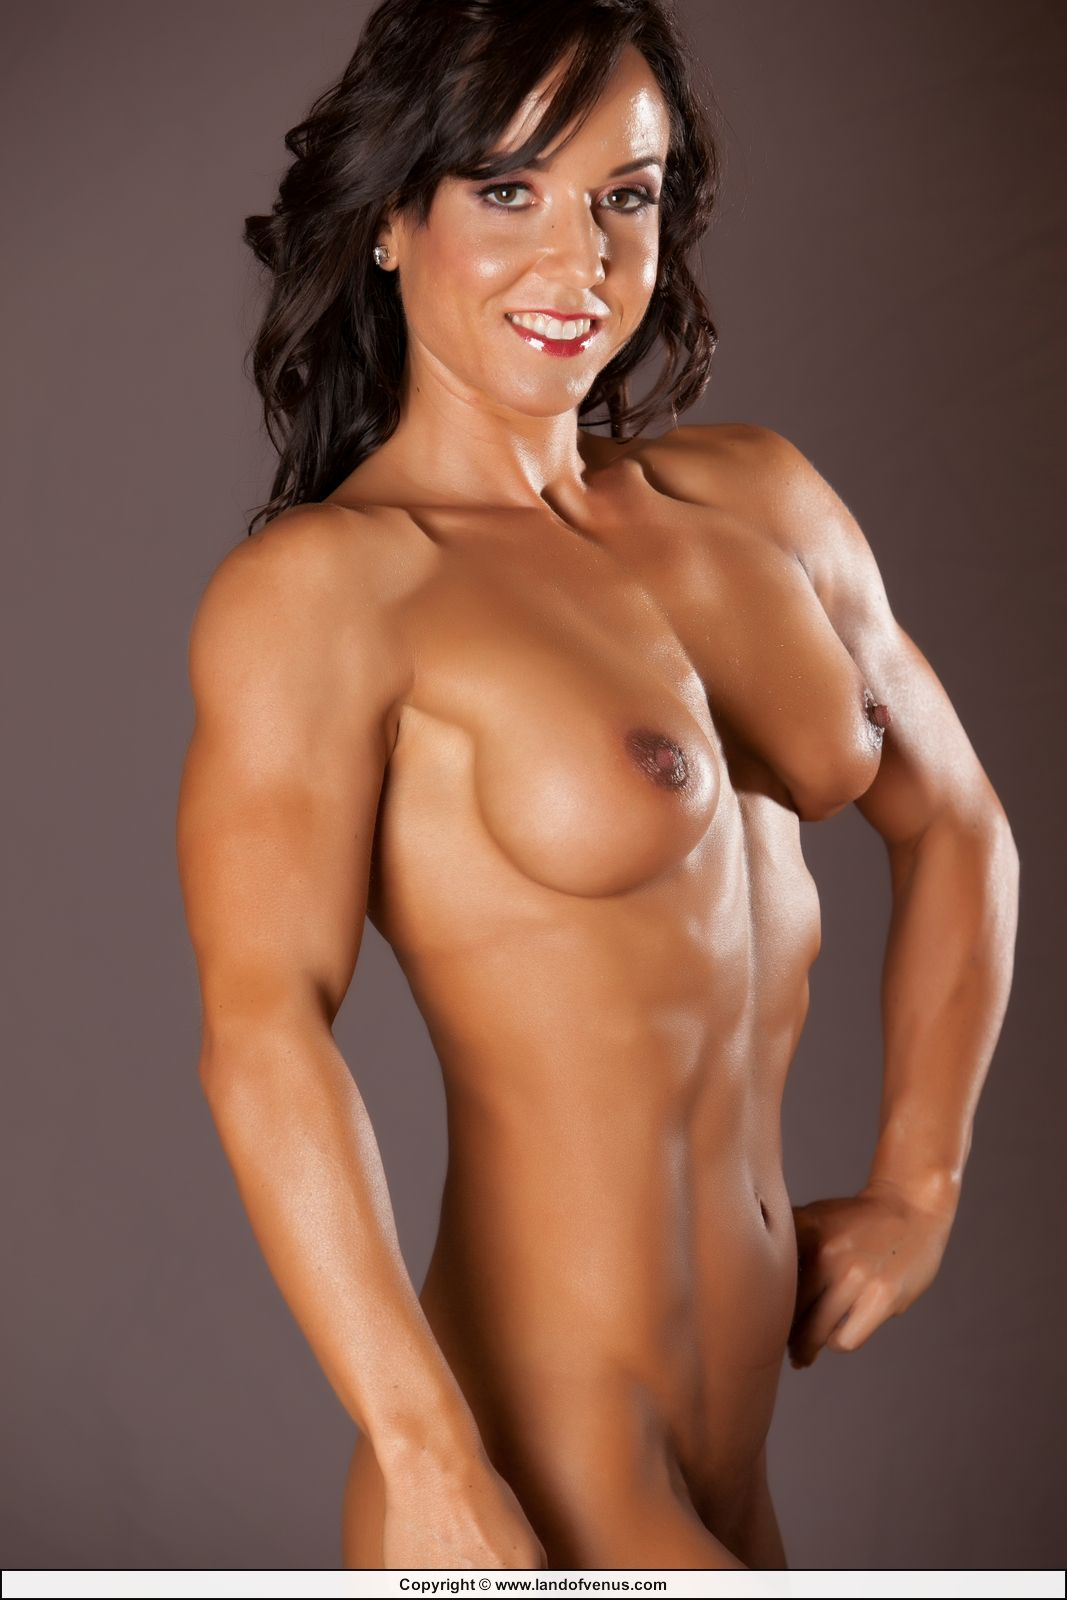 Naked Women Bodybuilders  Land Of Venus - Nude Female -3496